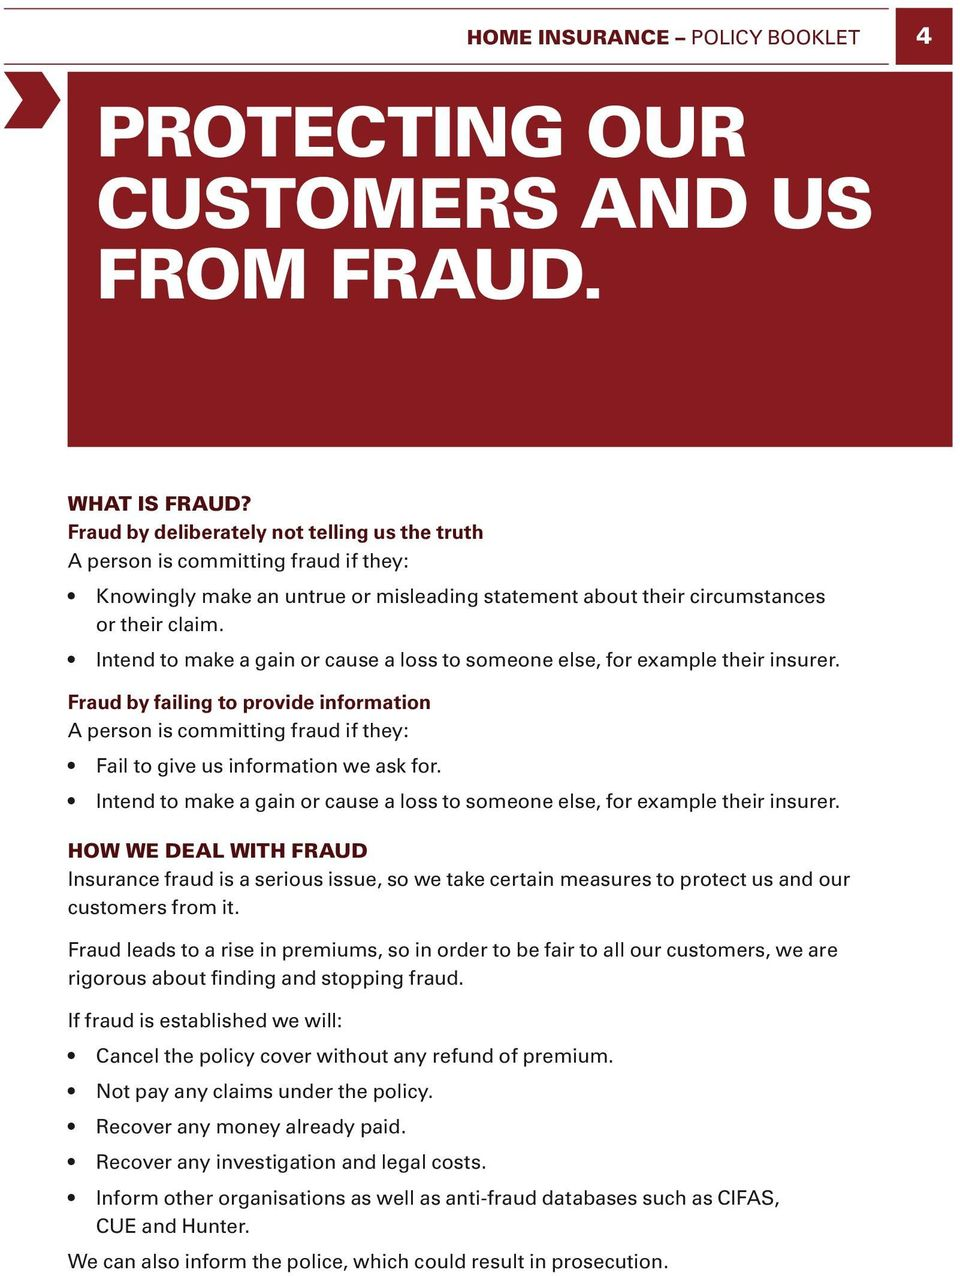 Intend to make a gain or cause a loss to someone else, for example their insurer. Fraud by failing to provide information A person is committing fraud if they: Fail to give us information we ask for.